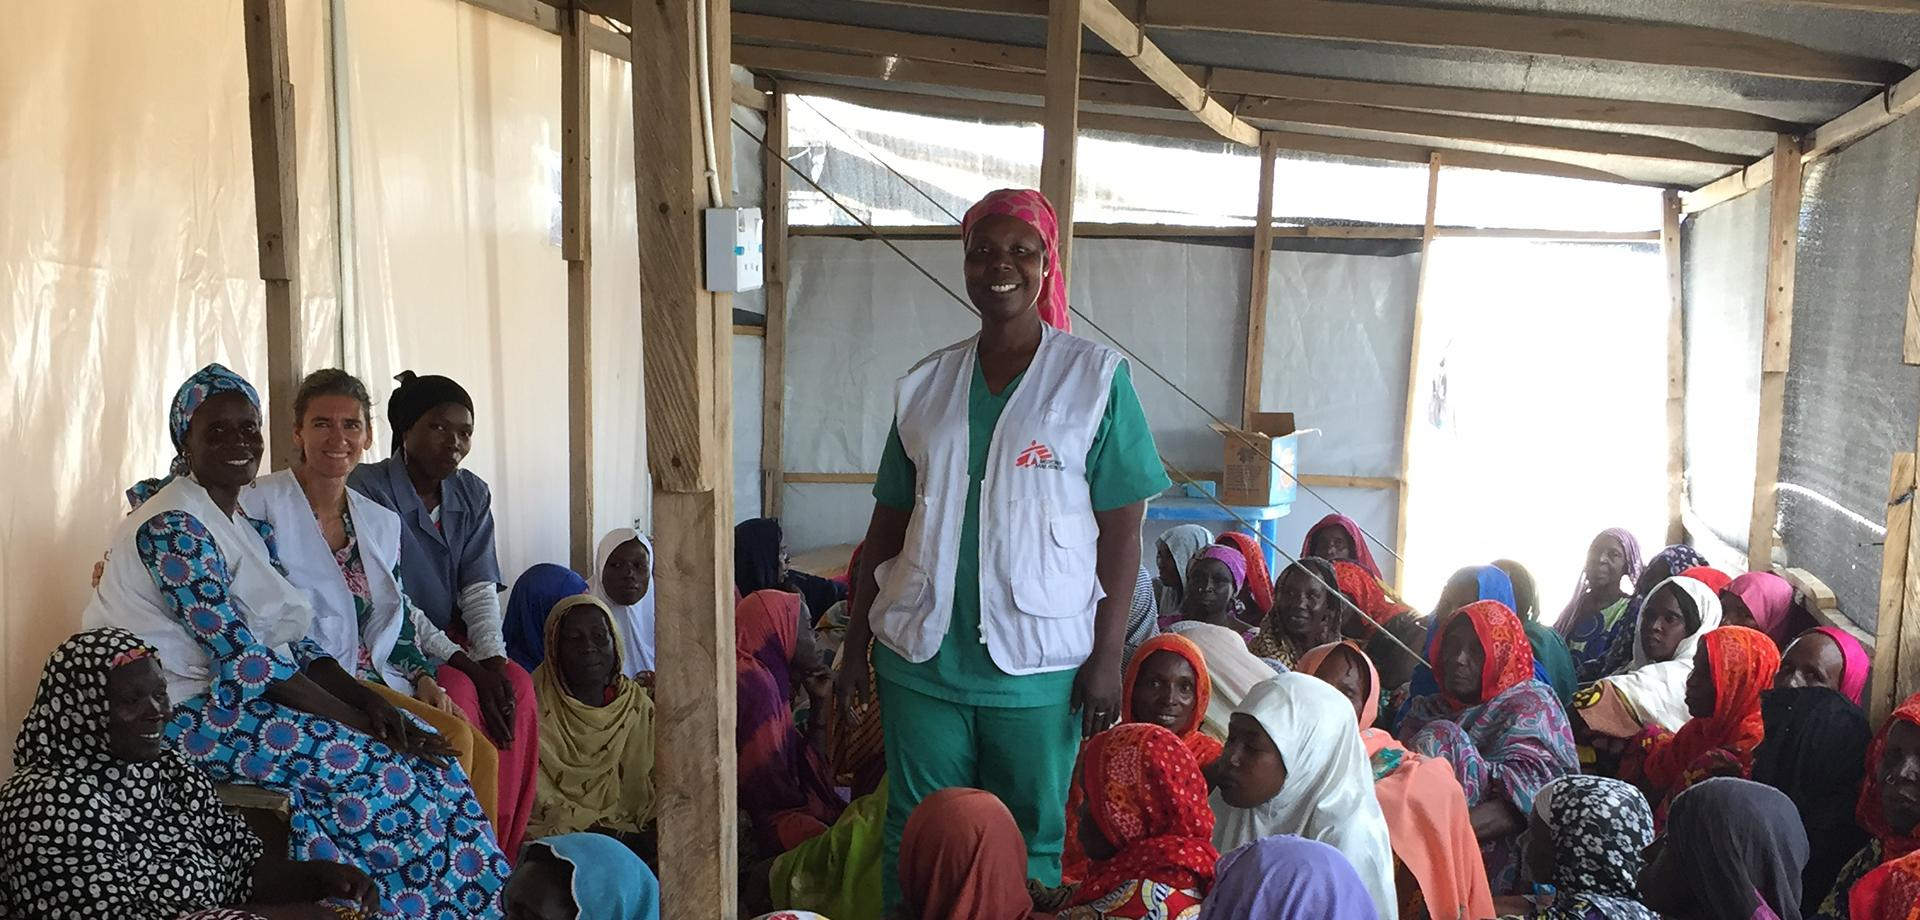 Aisha Akello works with MSF at an IPD camp in Ngala, northeast Nigeria